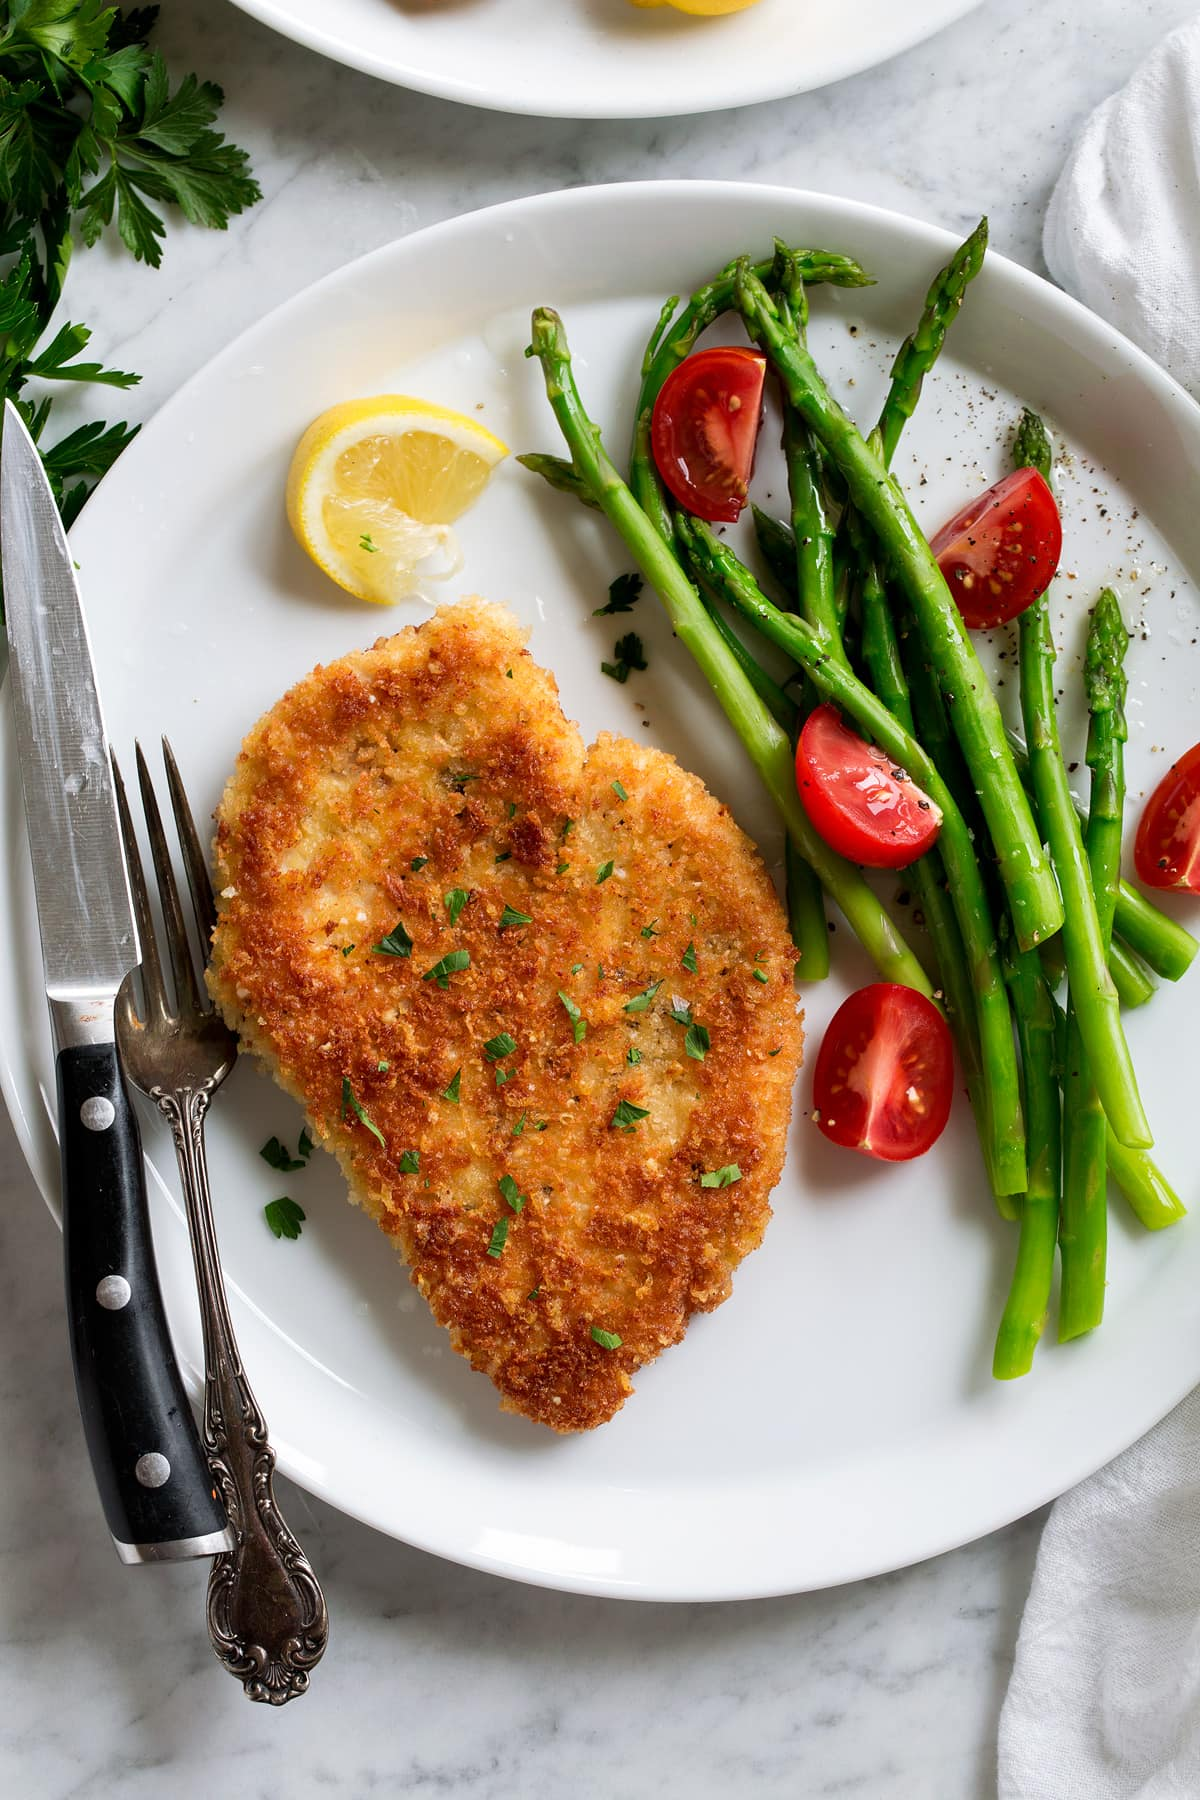 Parmesan Crusted Chicken fried breast shown on a serving plate with a side of asparagus and tomatoes.